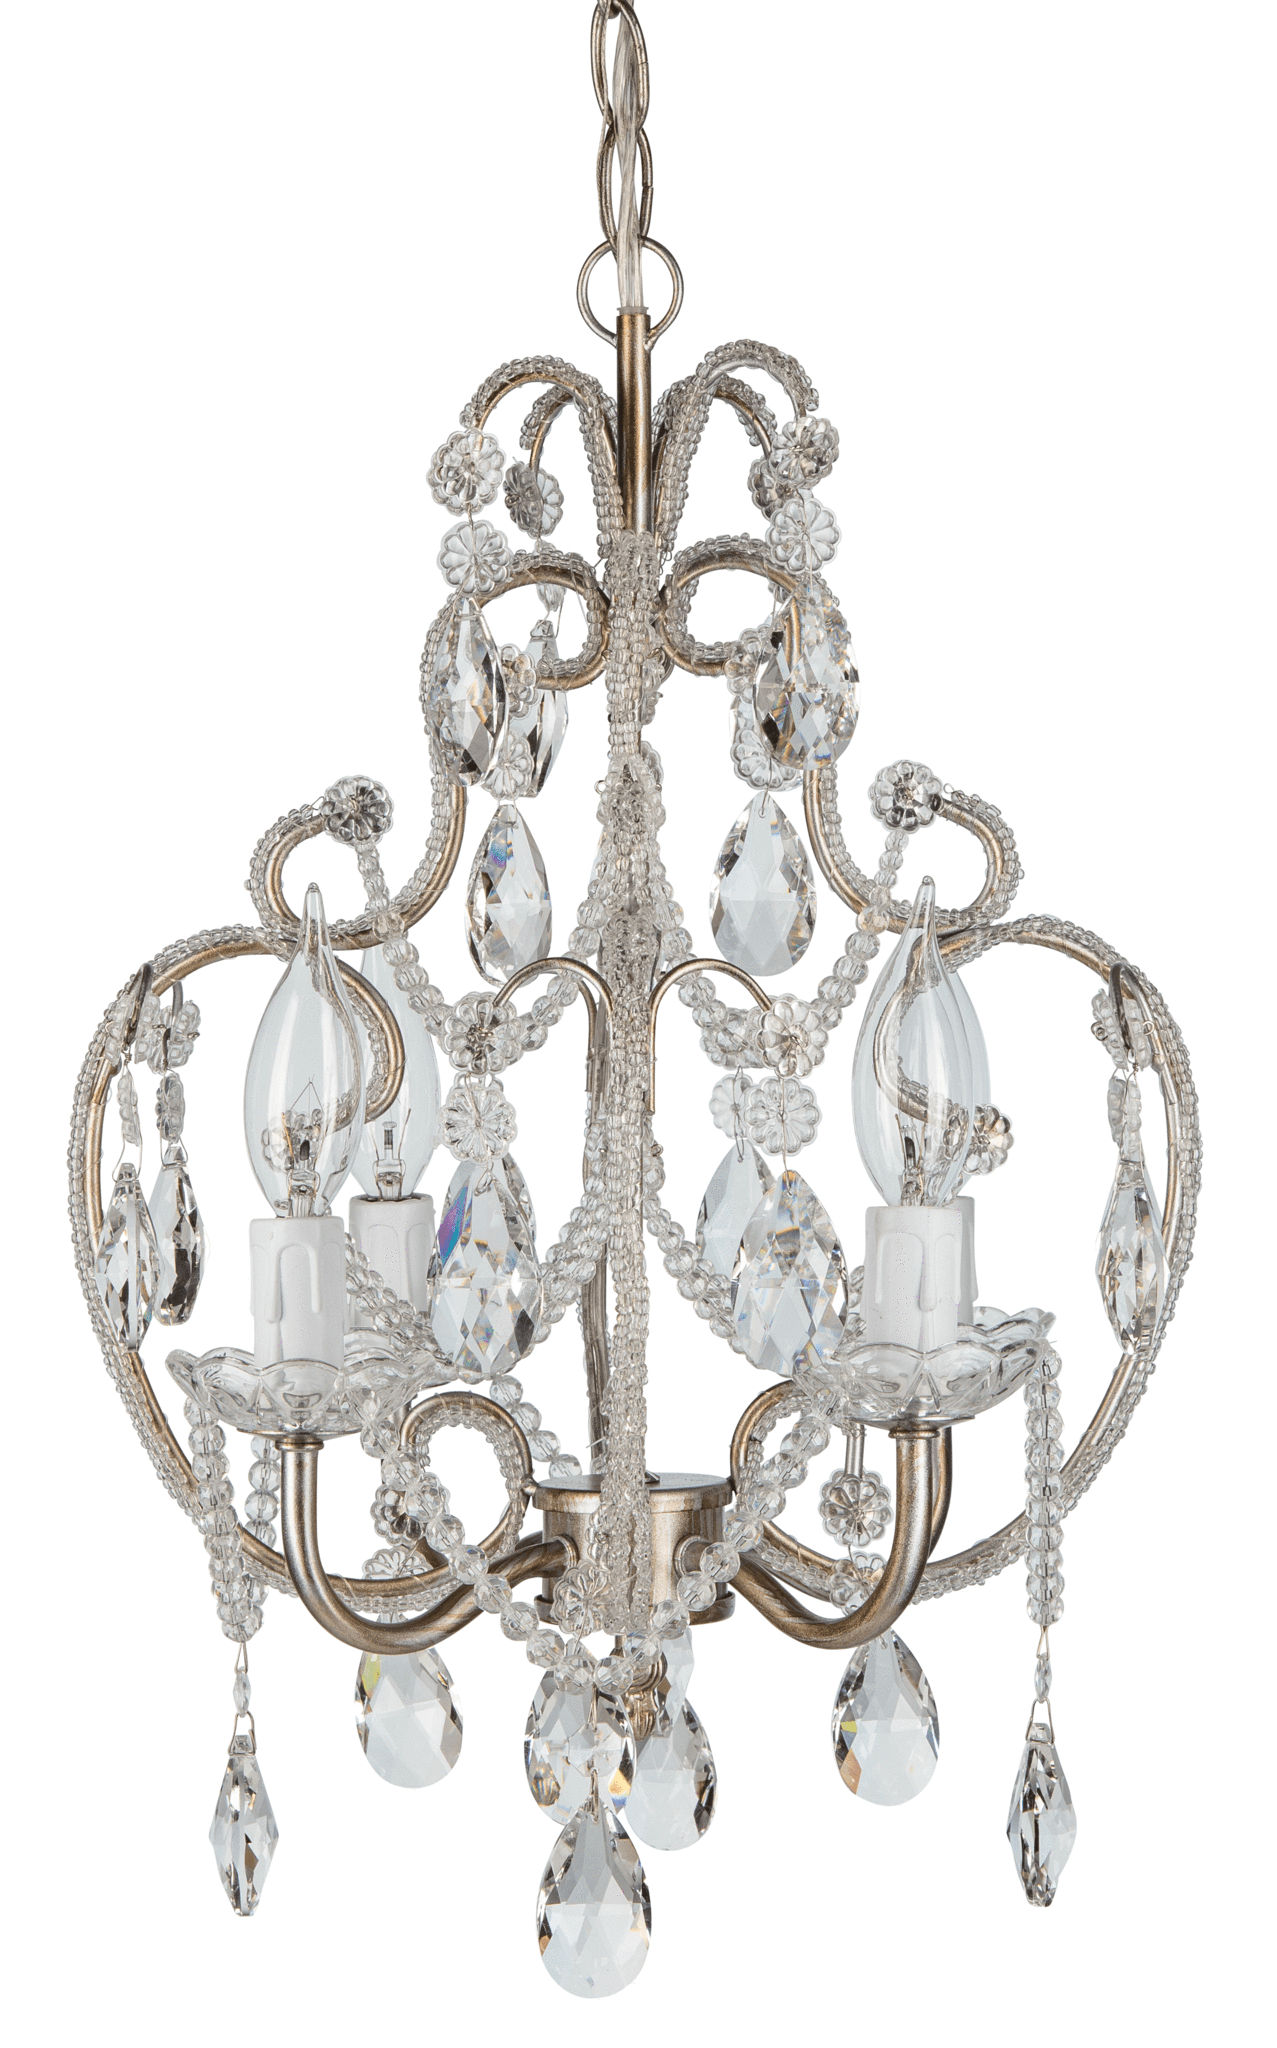 4 Light Beaded Crystal Plug In Chandelier (silver) | Amalfi Inside Aldora 4 Light Candle Style Chandeliers (View 12 of 30)